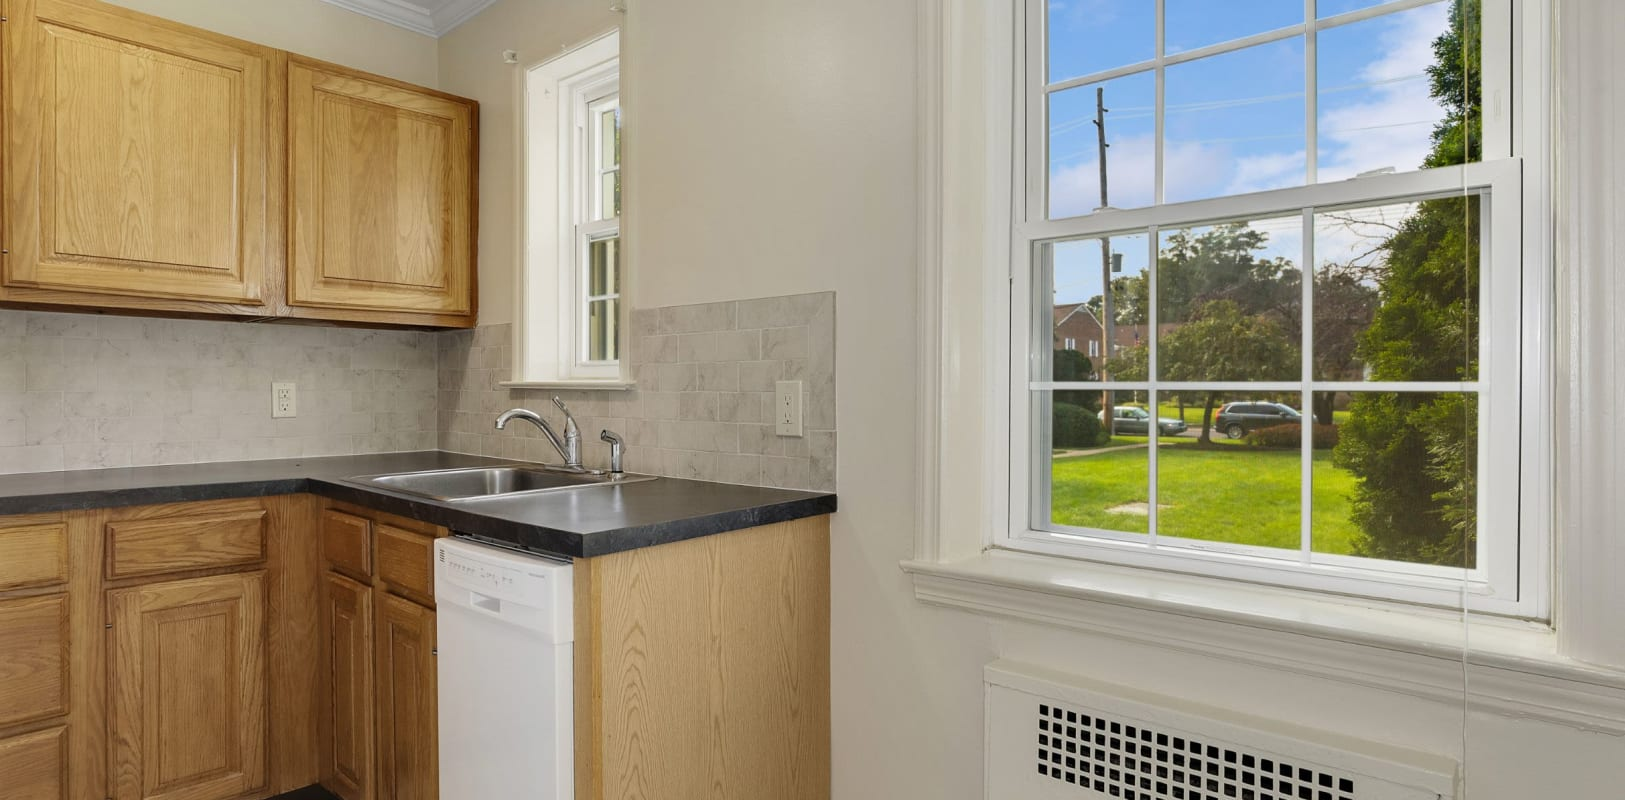 Kitchen with a large window at Mayflower Apartments in Ridgewood, New Jersey